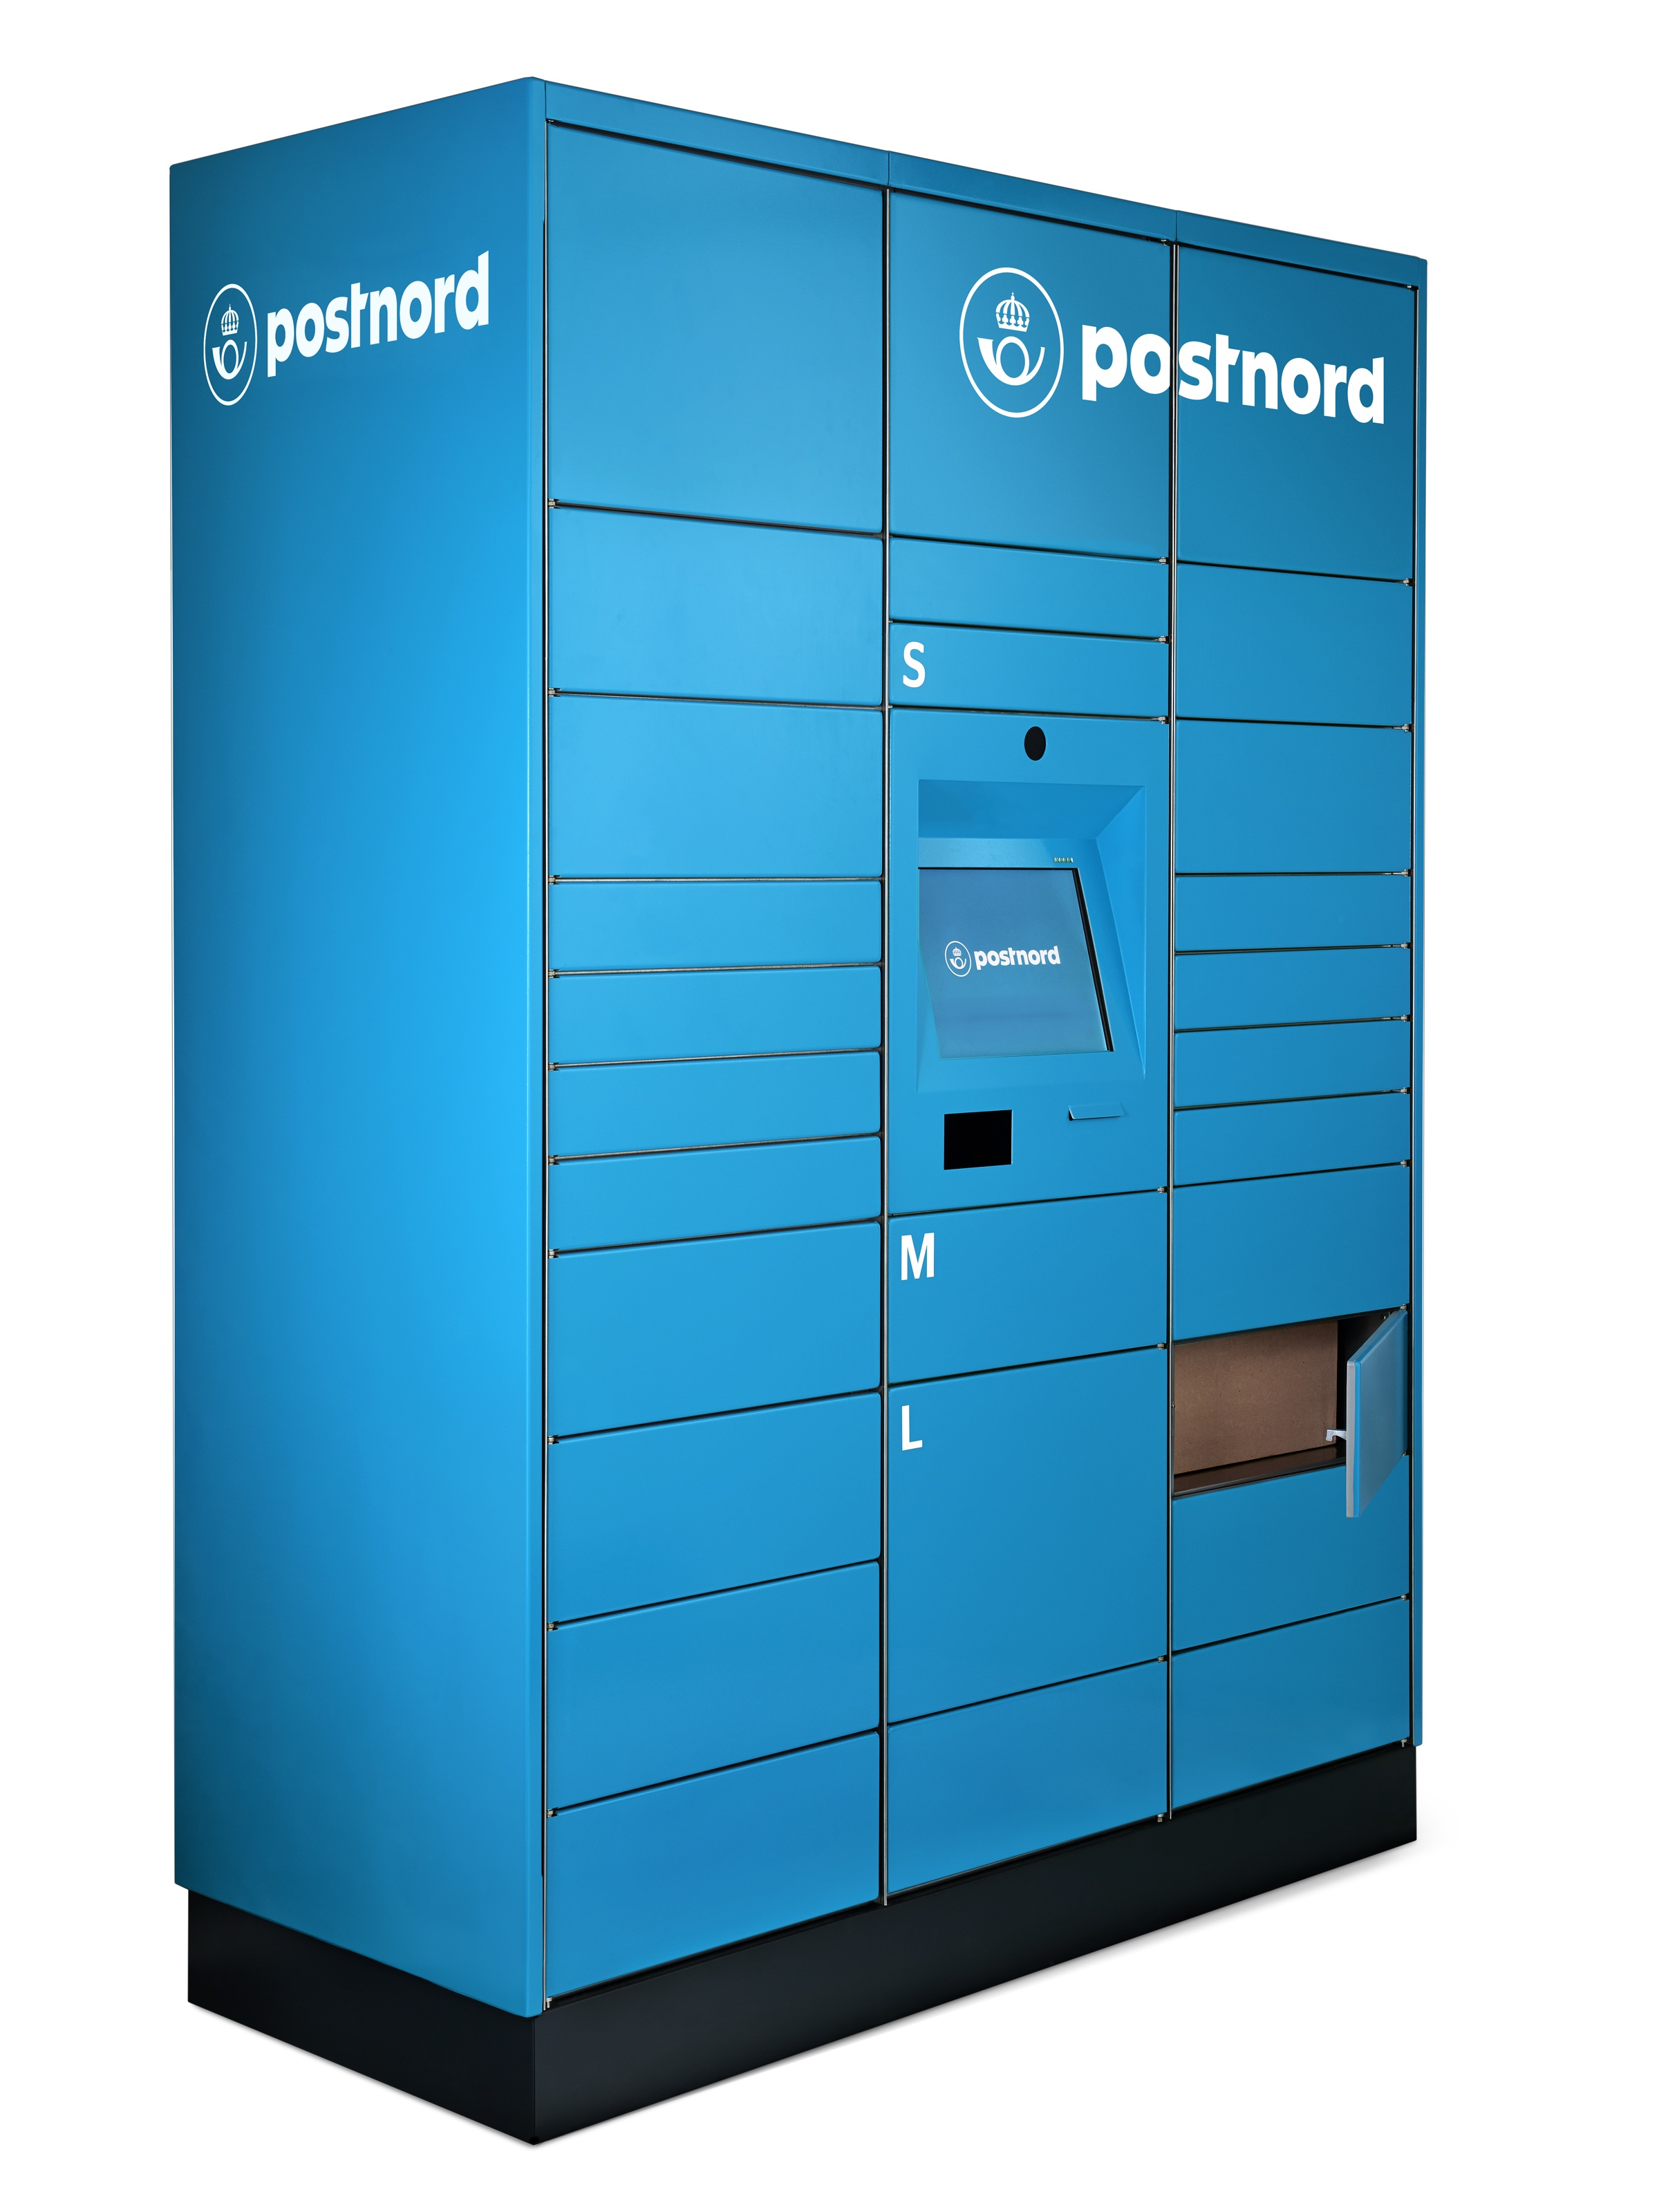 525a059f Zalando first to trial PostNord's collecting boxes ...